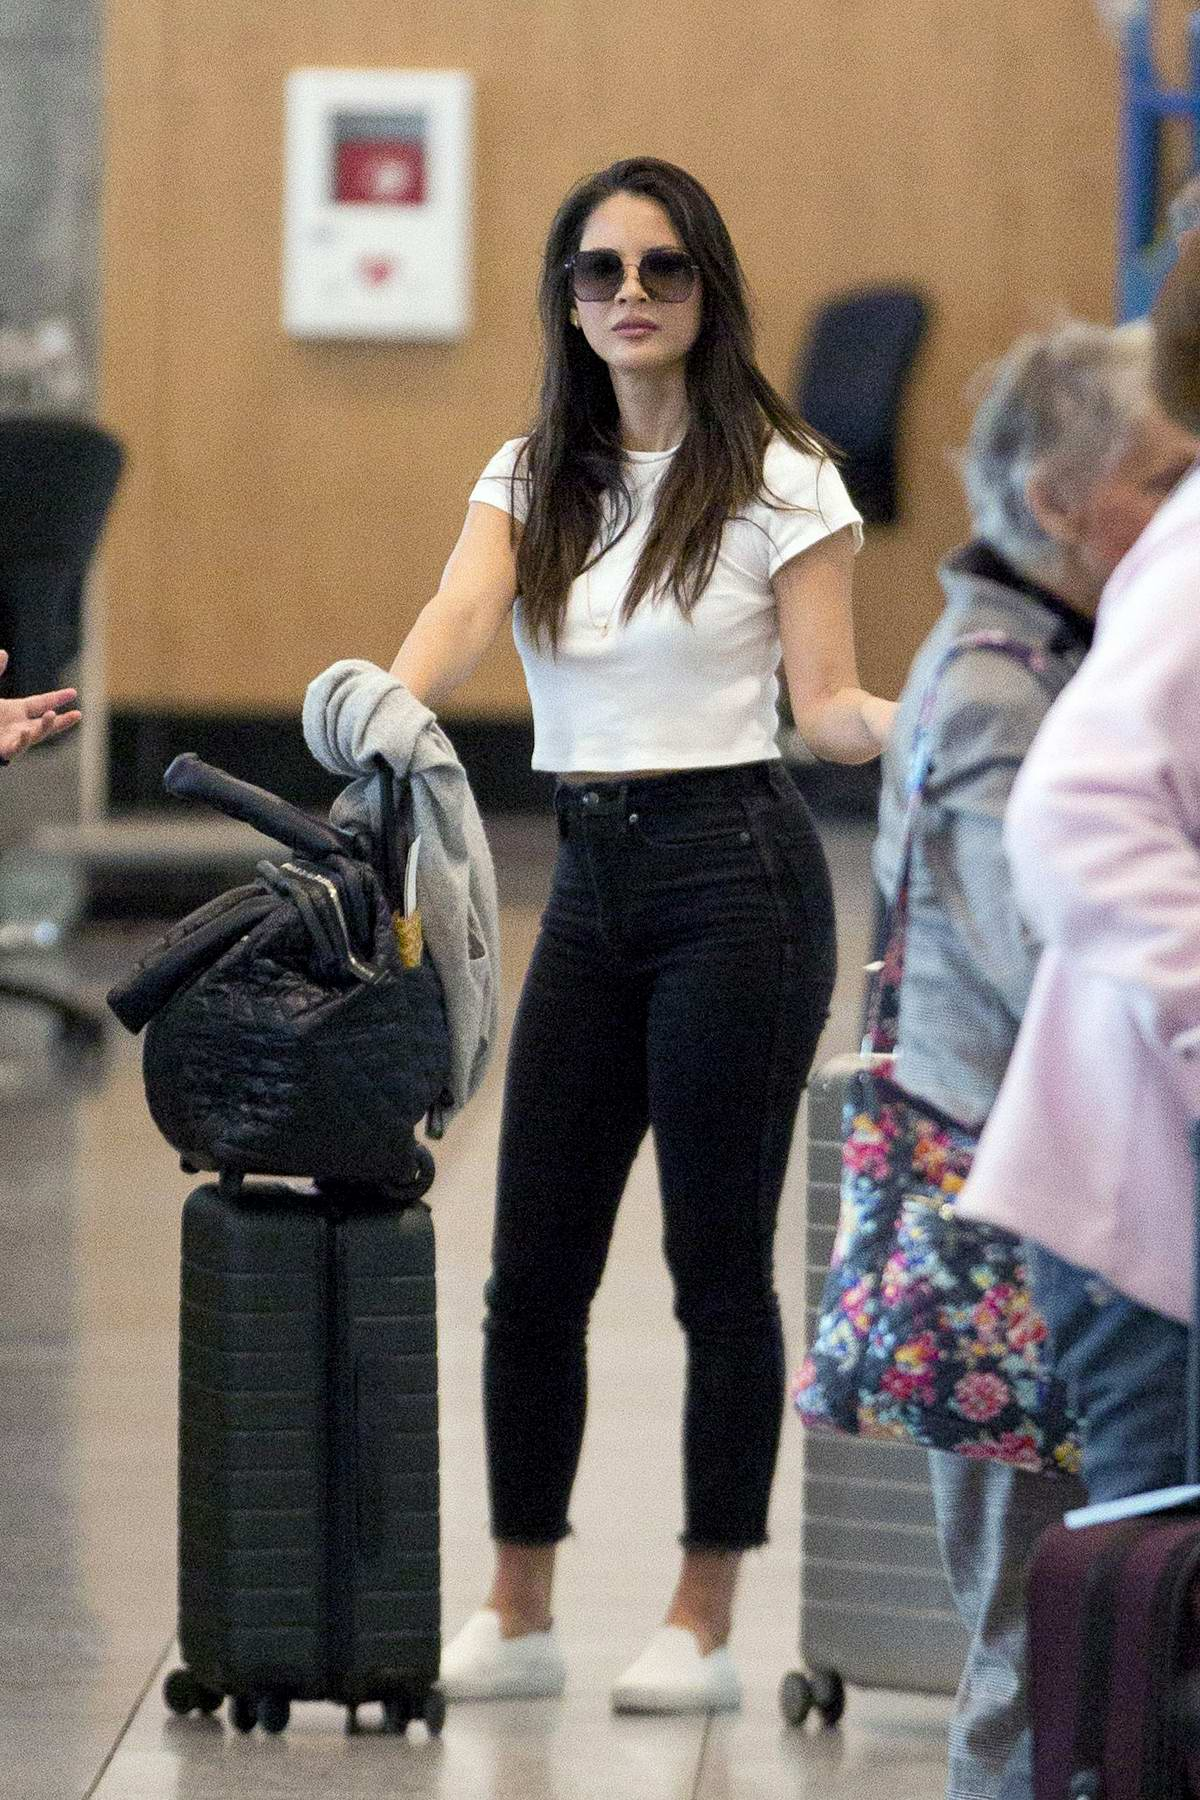 Olivia Munn steps out for a stroll with her trainer before heading over to the airport in Montreal, Canada